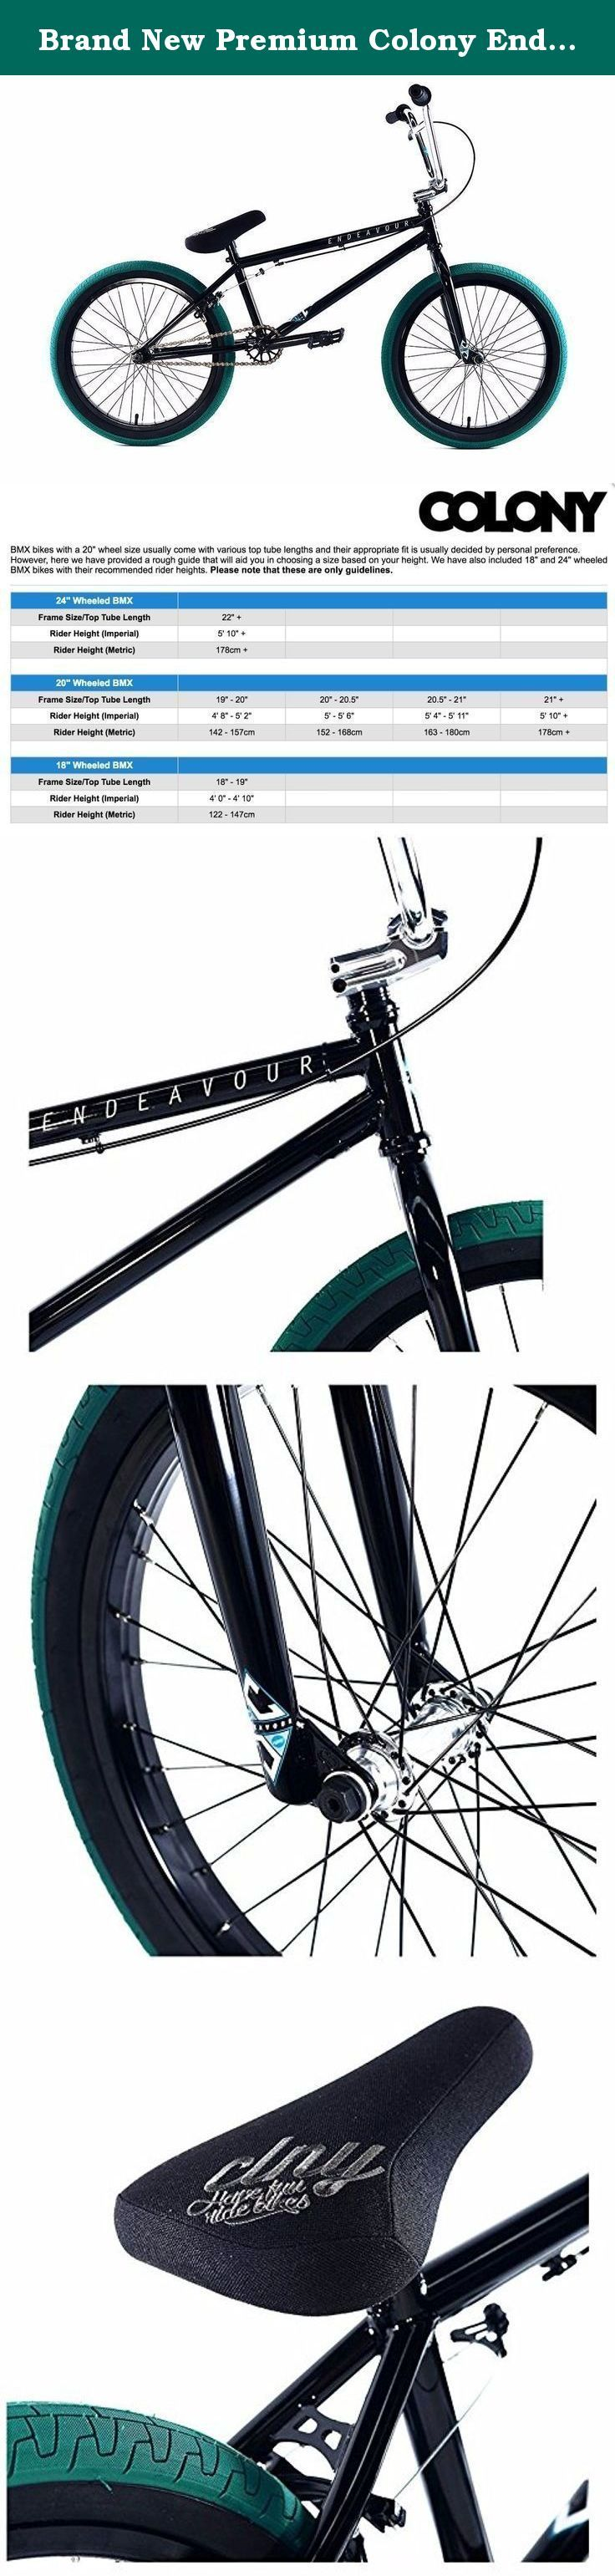 """Brand New Premium Colony Endeavour 20"""" BMX Bike 2017 Gloss Black Emerald. Colony Endeavour BMX Bike Since its introduction, the Colony Endeavour BMX Bike has been consistently great value, offering high-end spec at a mid-range price. This addition offers all the usual great points about the Endeavour, with upgraded geometry & spec to reflect the demands of modern day BMX. Specification Headset: Integrated Stem: Colony Squareback top load, full CNC 7075-T6 alloy Bars: Colony full CrMo, 9″..."""